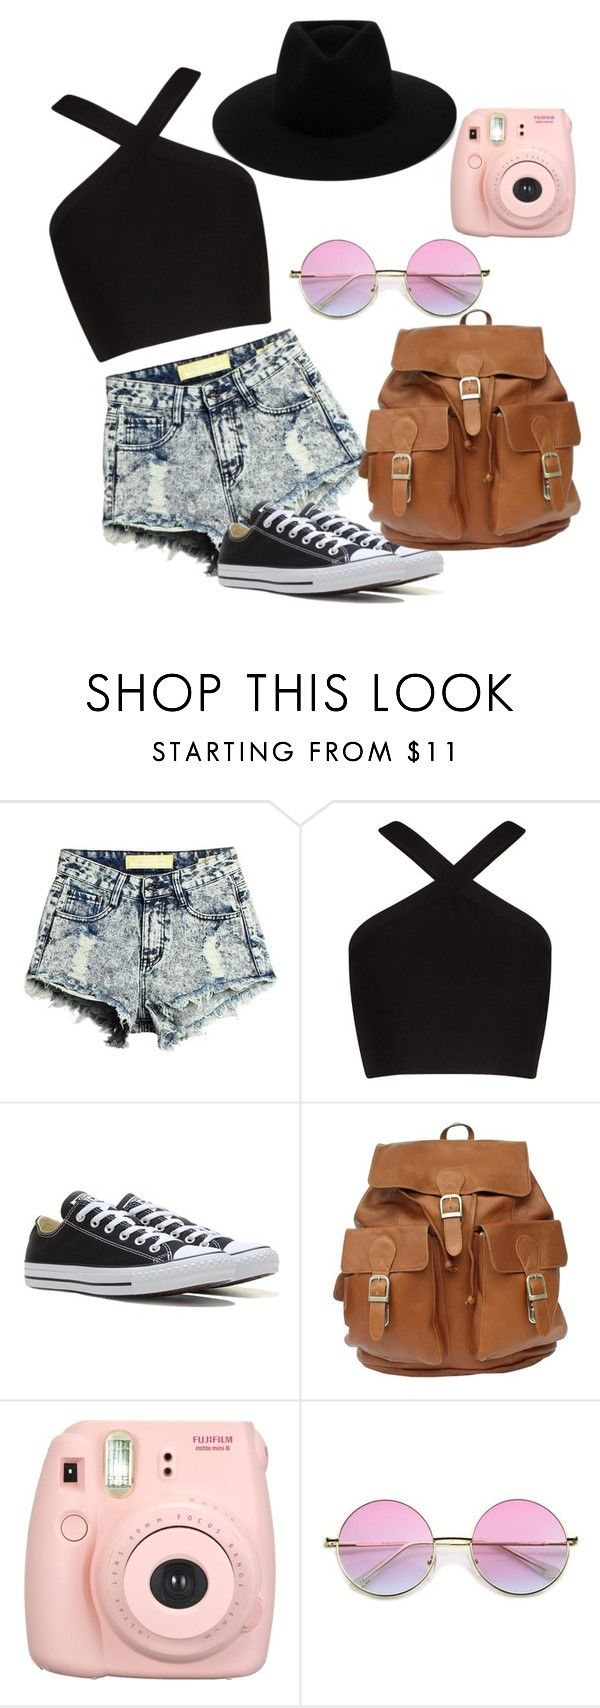 #162 by potato-cupcake on Polyvore featuring BCBGMAXAZRIA, Converse, rag & bone and Fujifilm